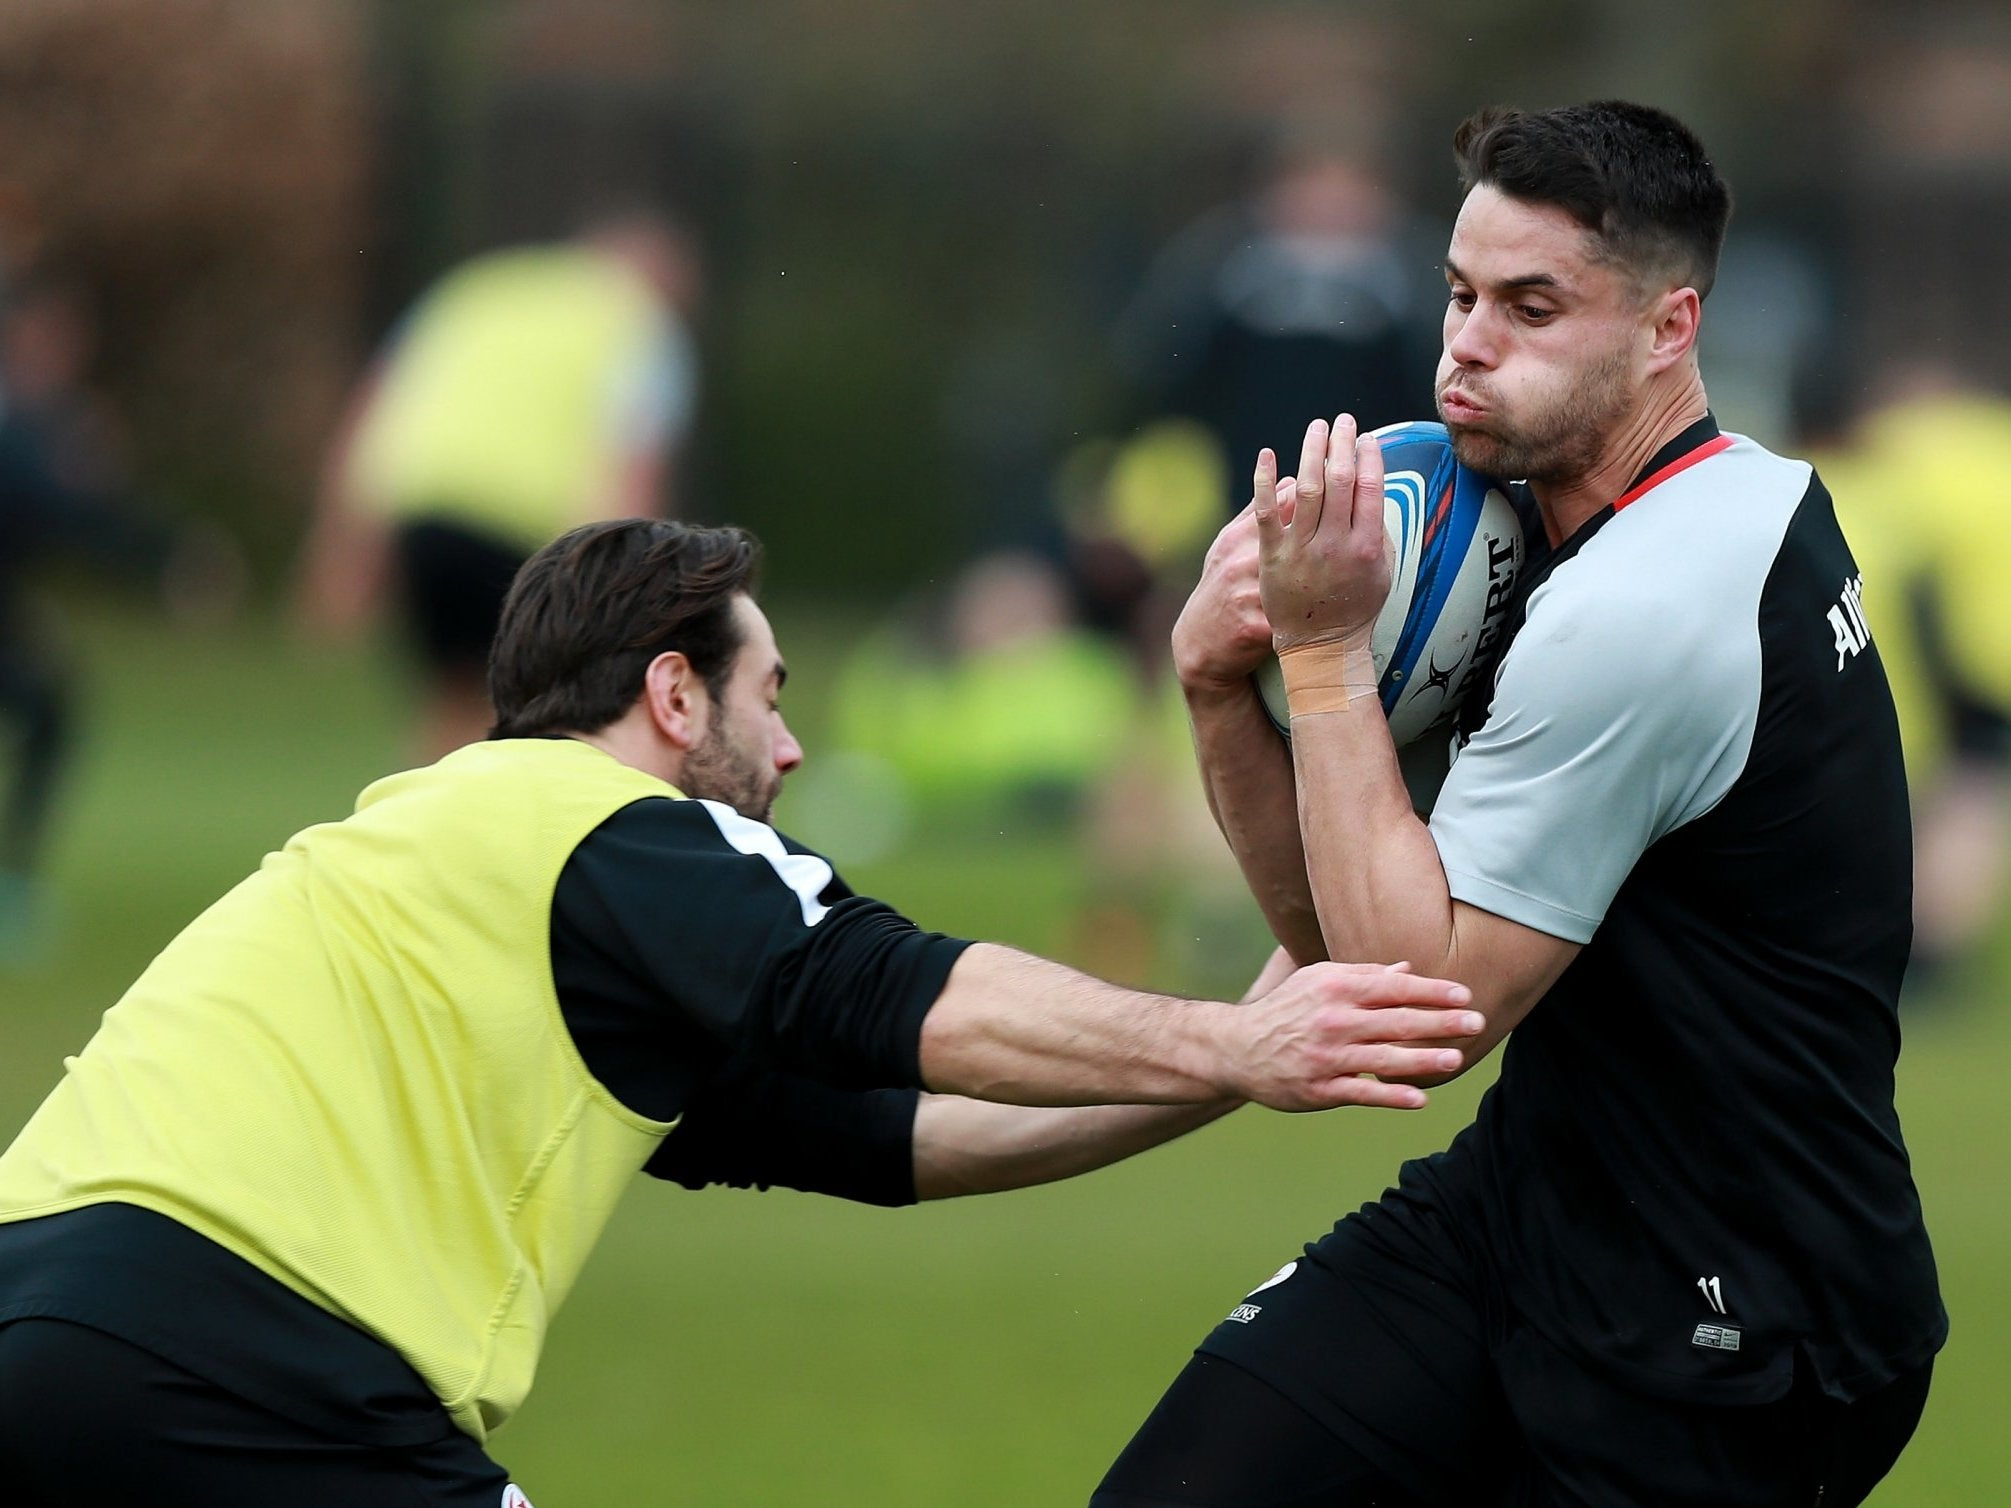 Saracens vs Glasgow Warriors: Sean Maitland prepared for punishing Champions Cup quarter-final after switching sides in Anglo-Scottish rivalry